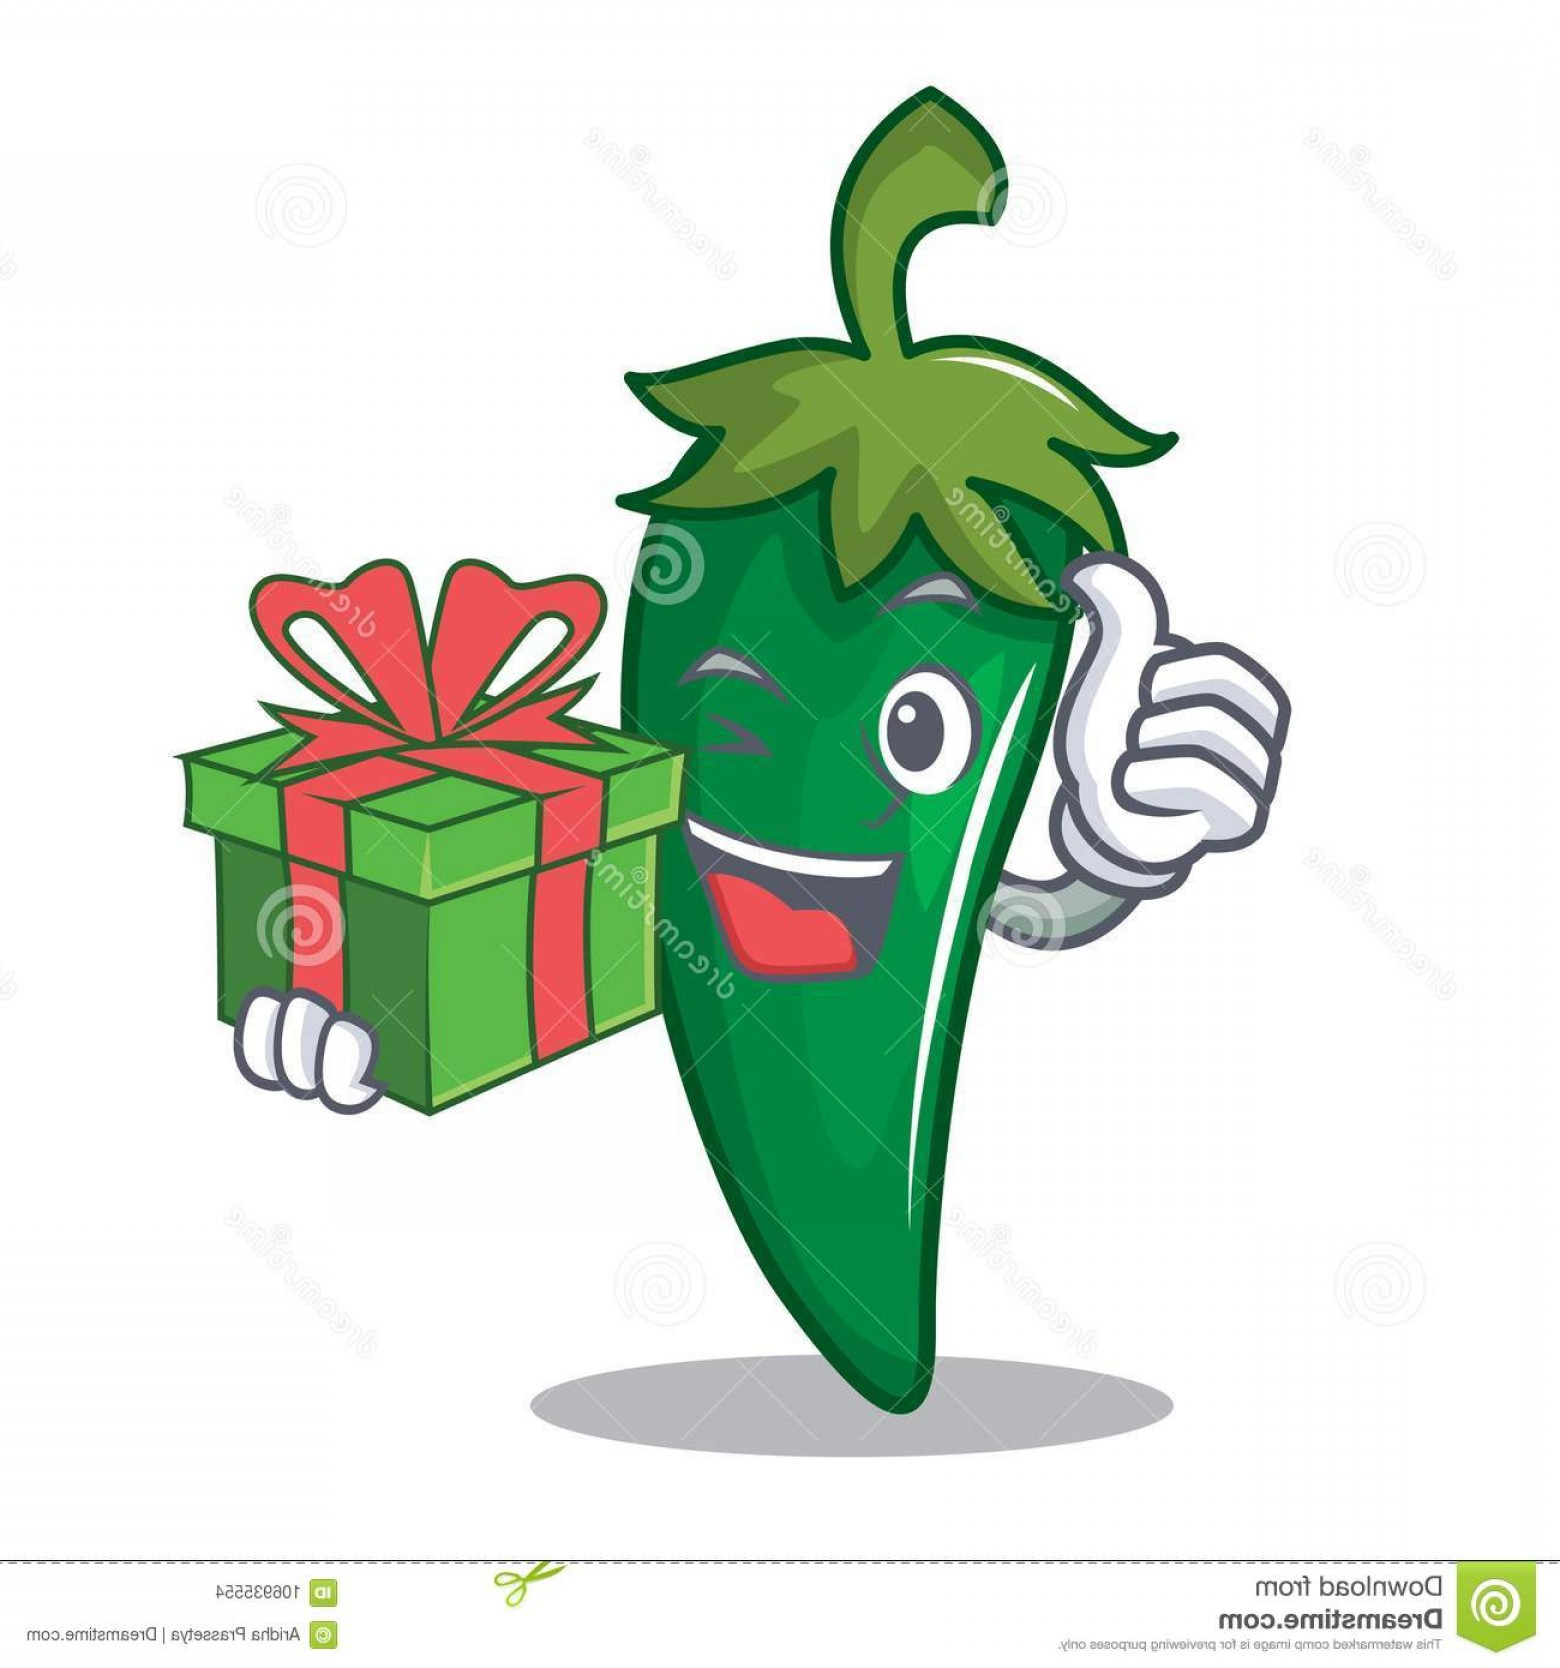 Massport Vector: Gift Green Chili Character Cartoon Gift Green Chili Character Cartoon Vector Illustration Image